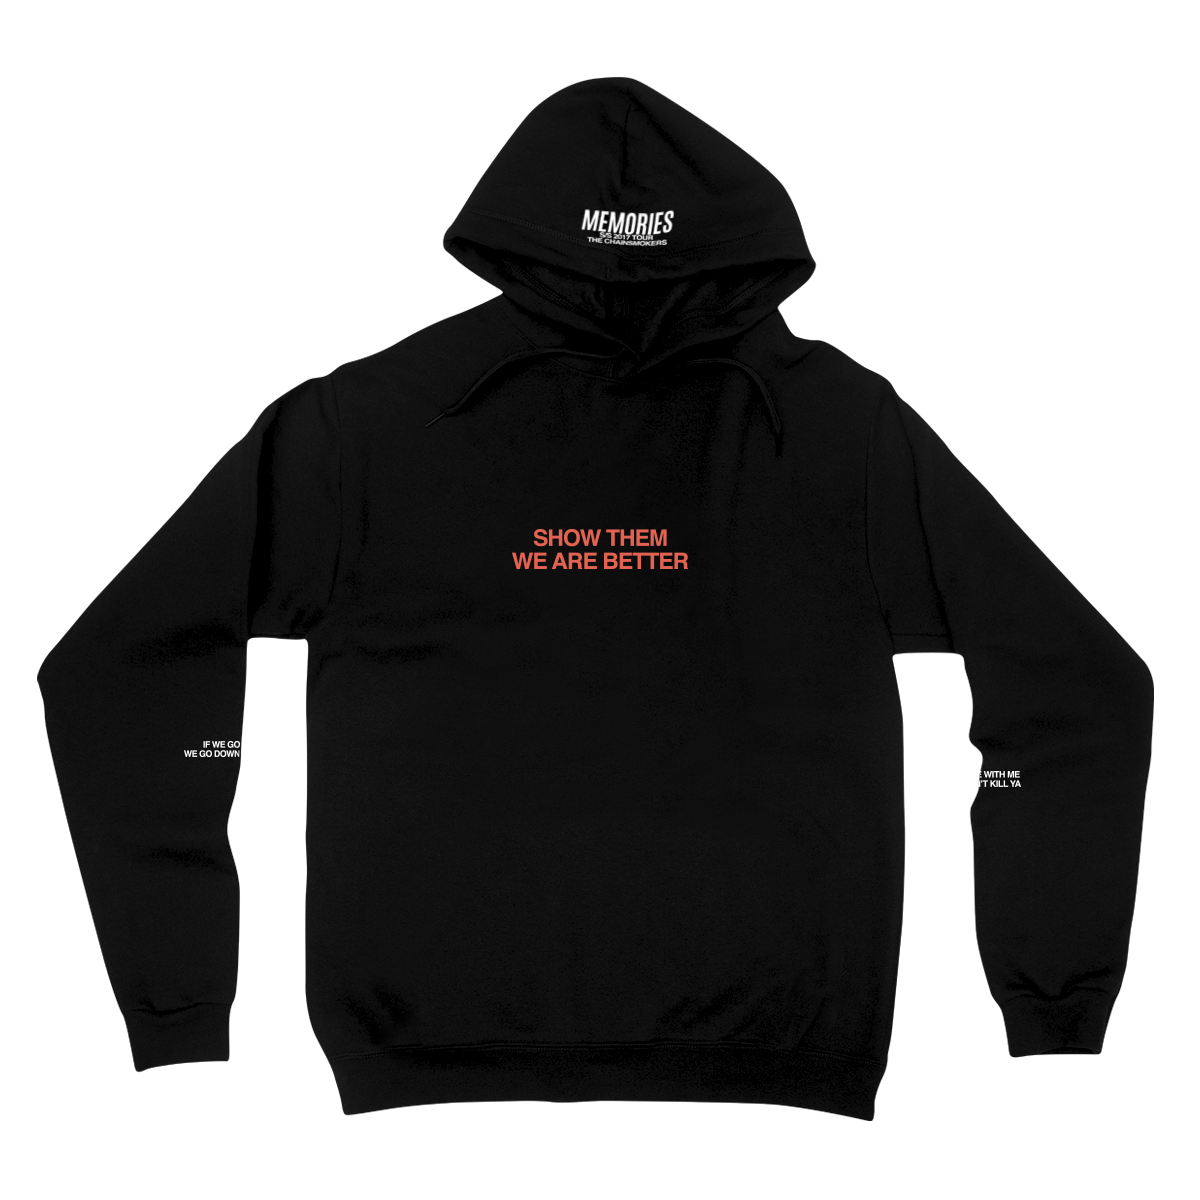 Memories Pullover Hoodie - The Chainsmokers